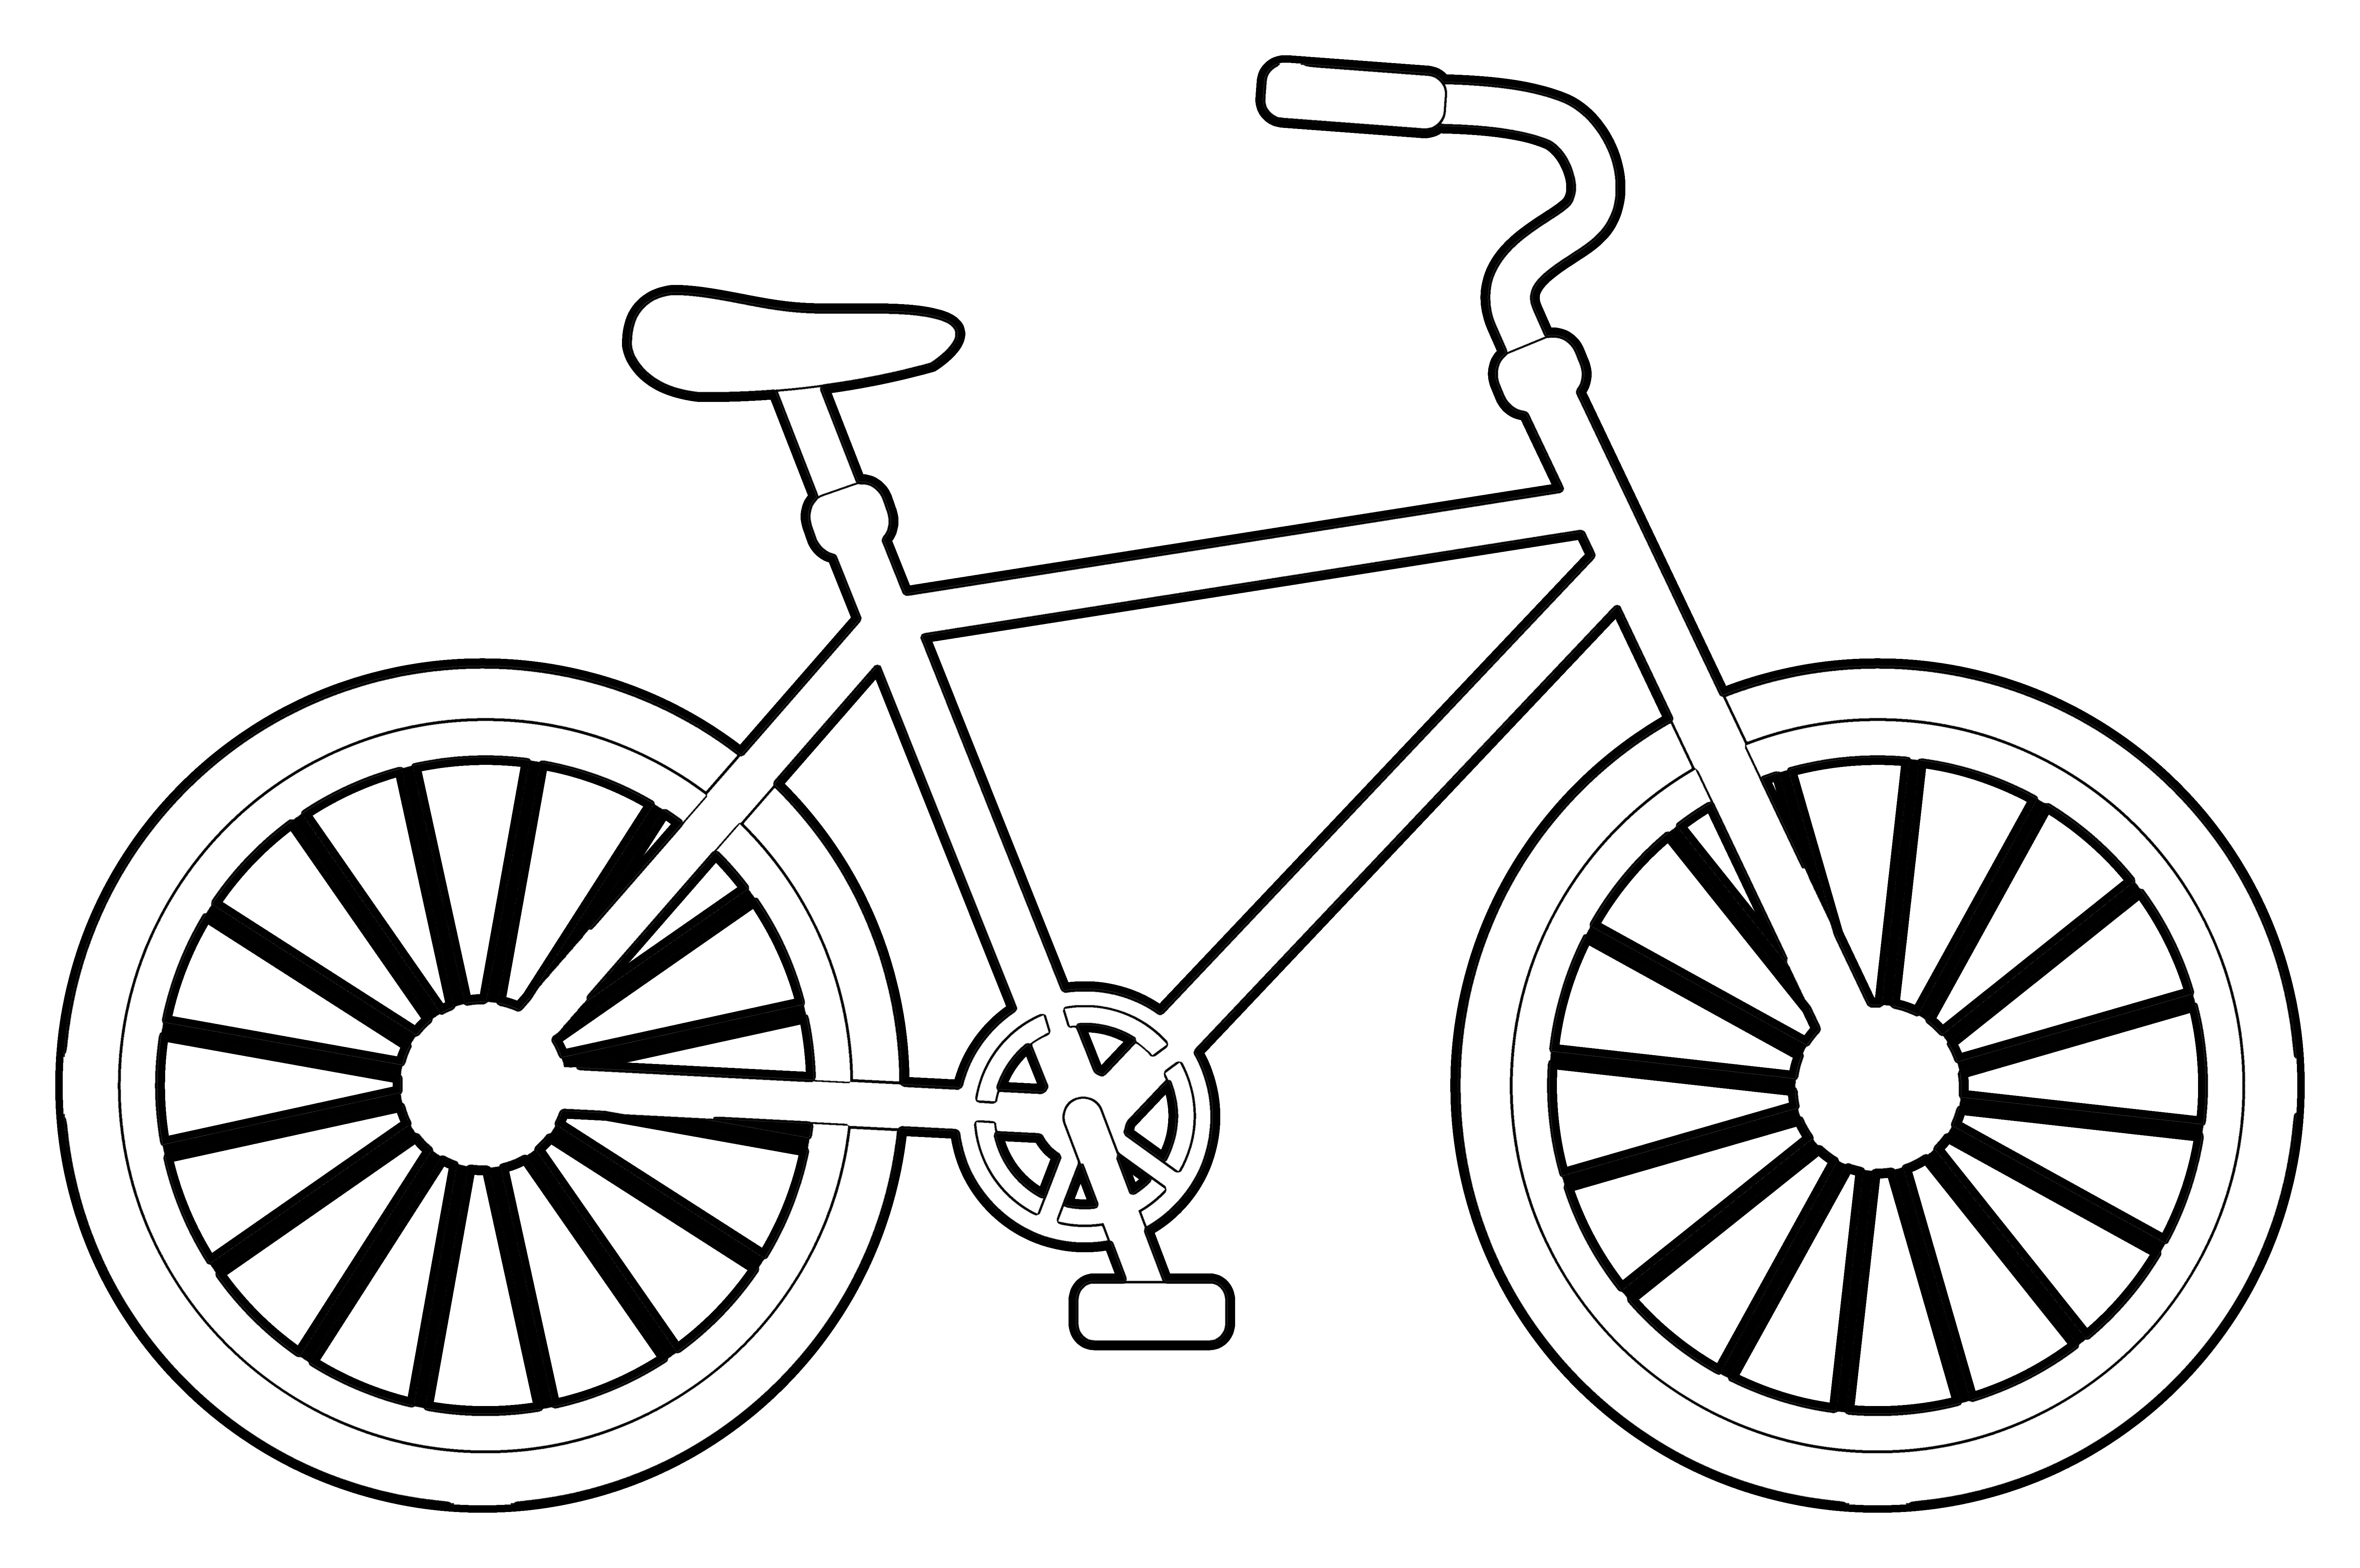 6659x4424 Unique Bicycles Coloring Pages Design Printable Coloring Sheet